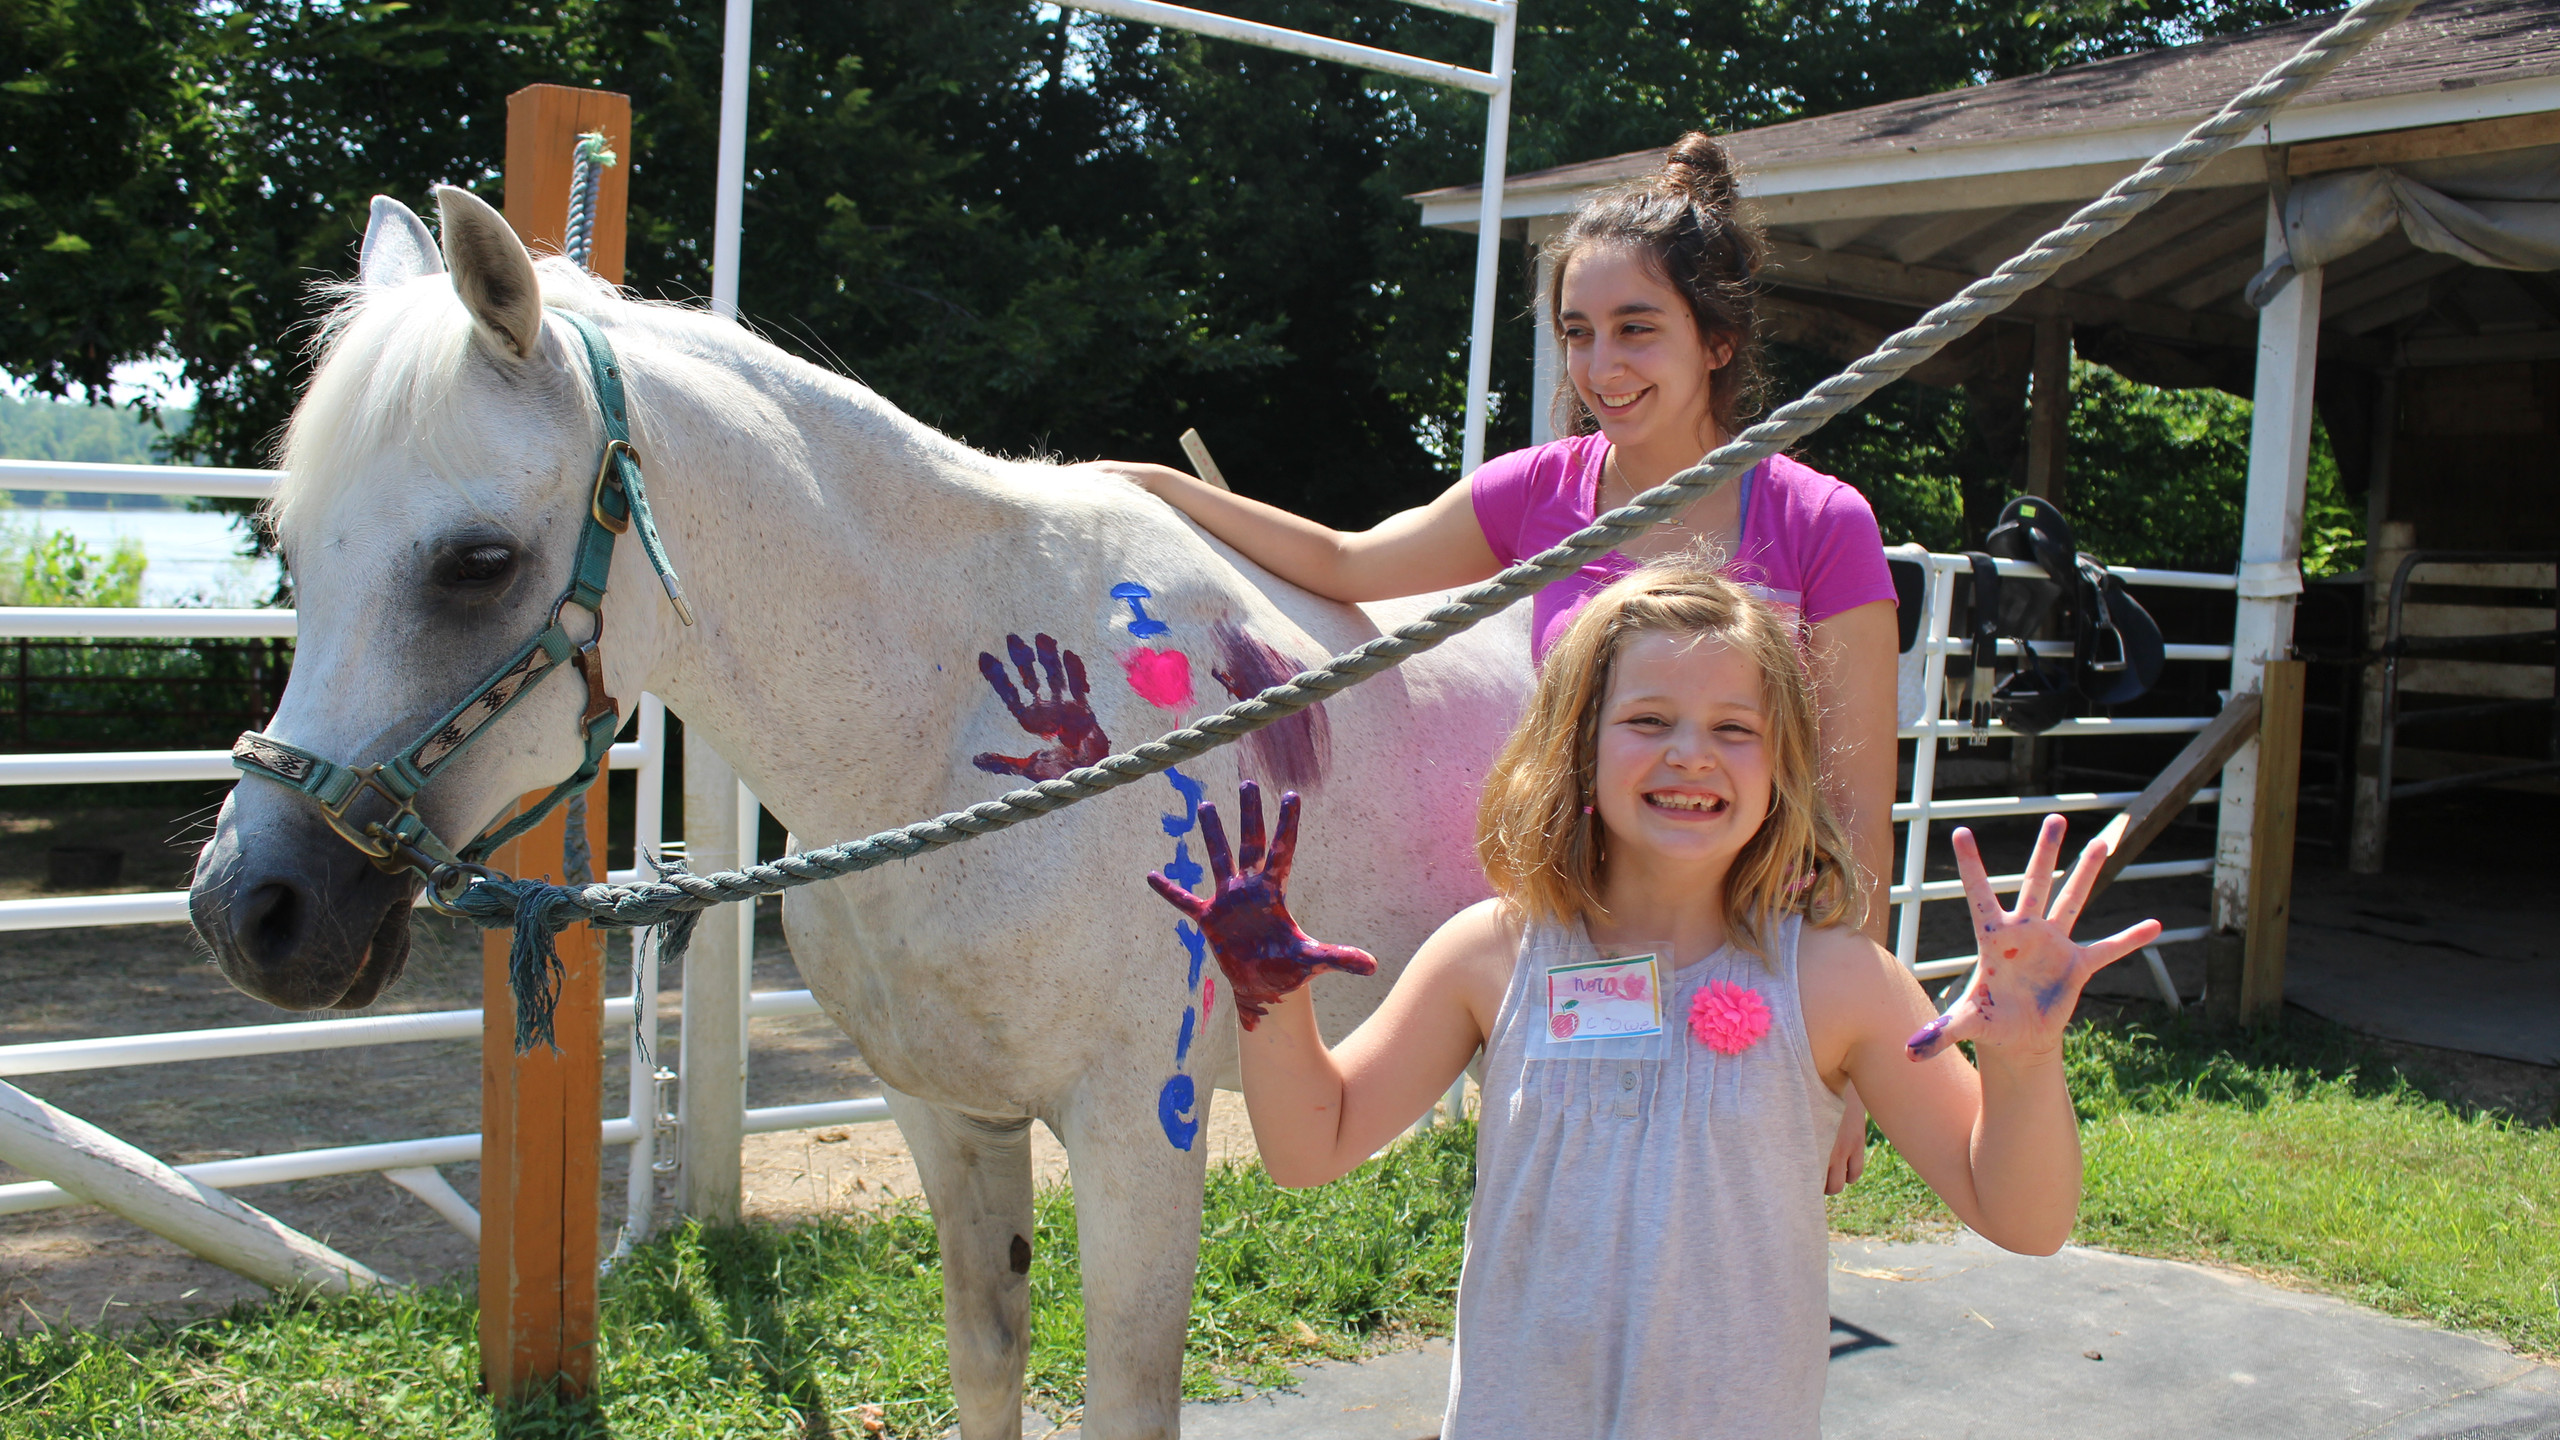 Ride On St. Louis Summer Camp